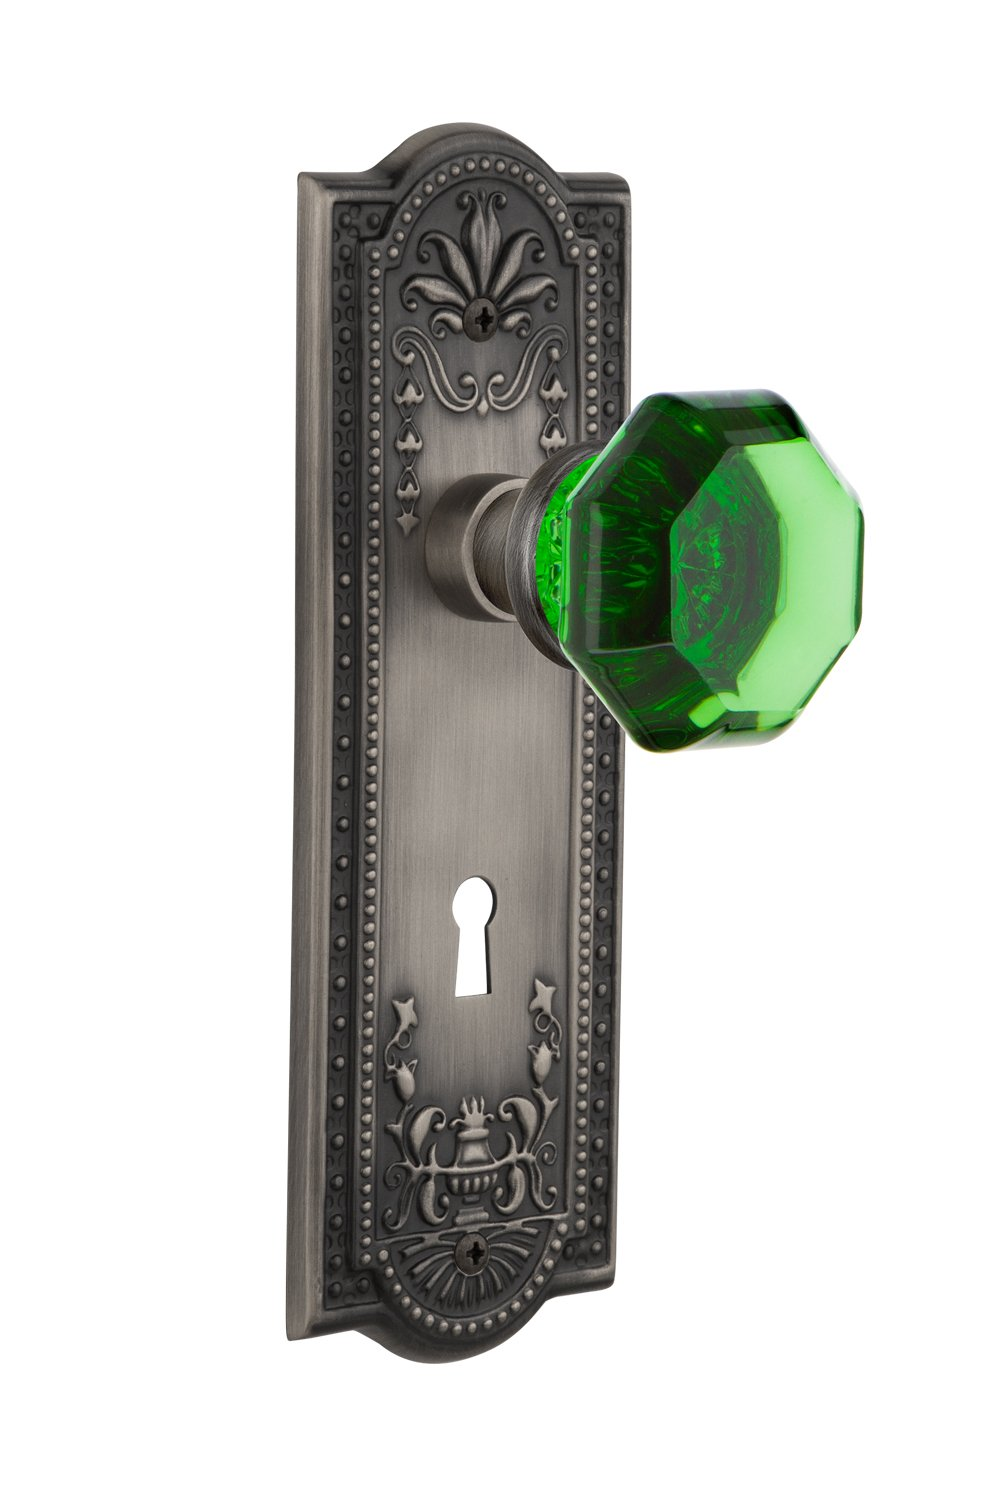 2.75 Nostalgic Warehouse 721696 Meadows Plate with Keyhole Passage Waldorf Emerald Door Knob in Timeless Bronze